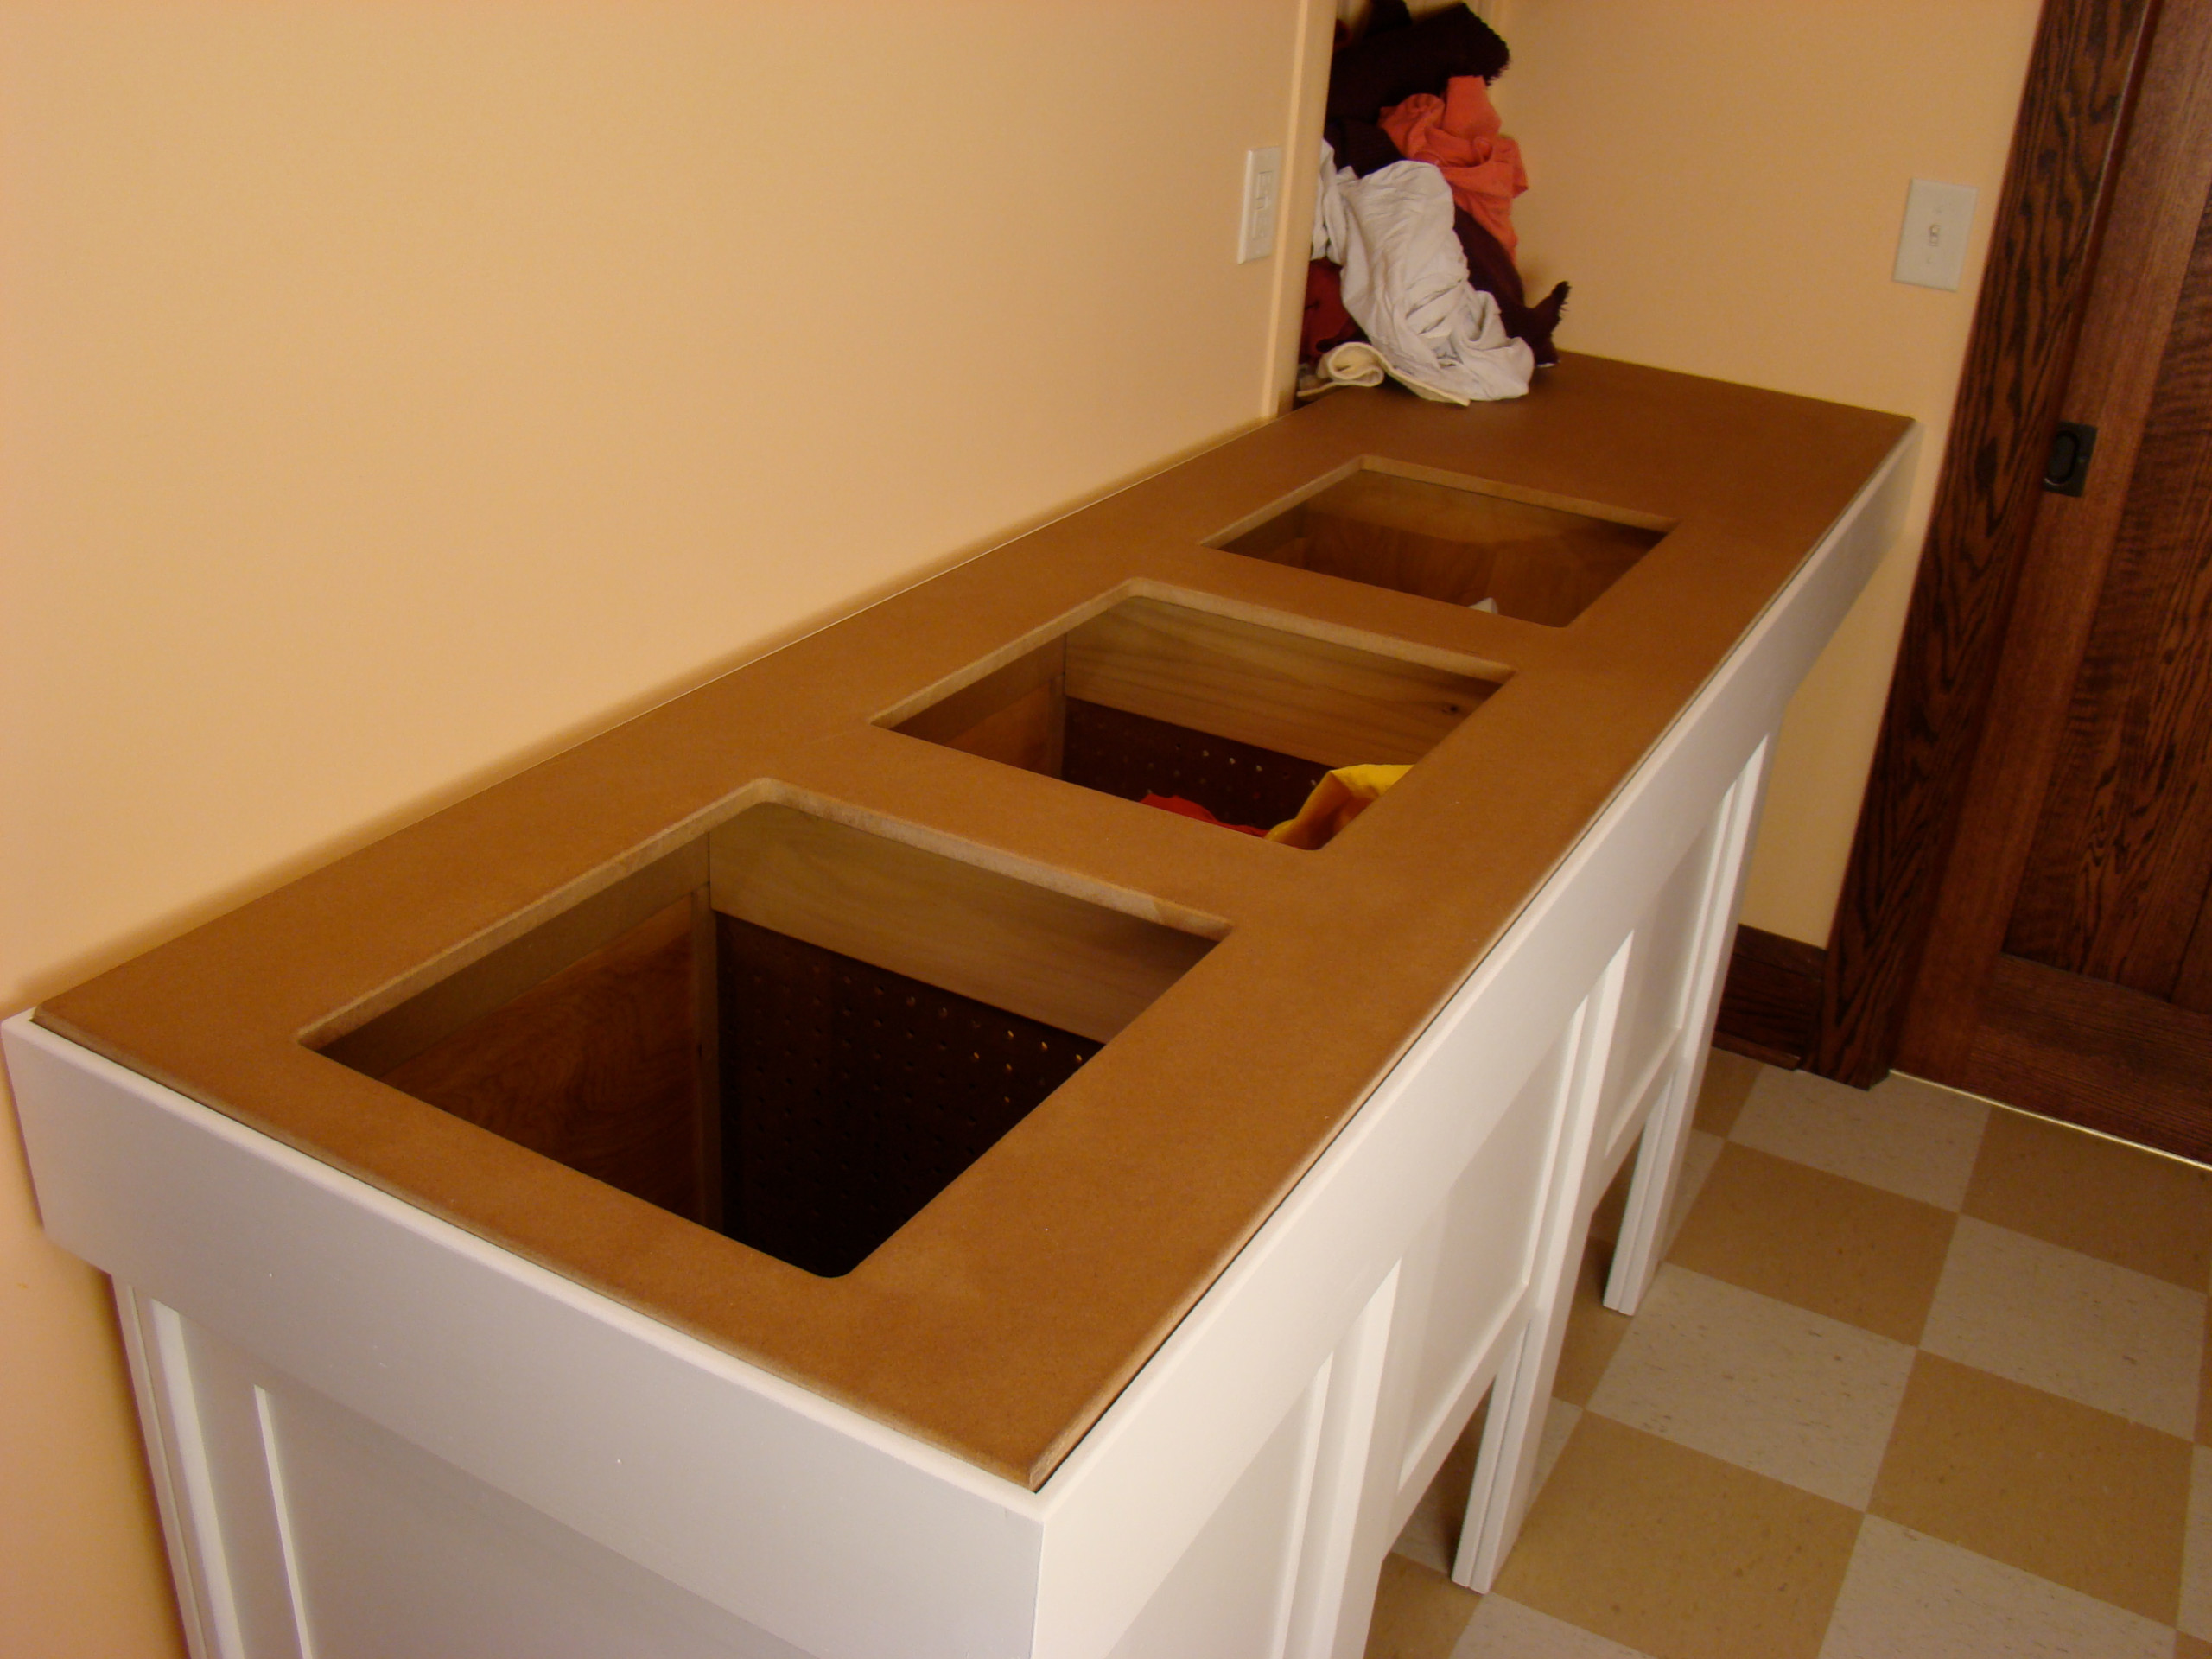 Laundry Room sorting table